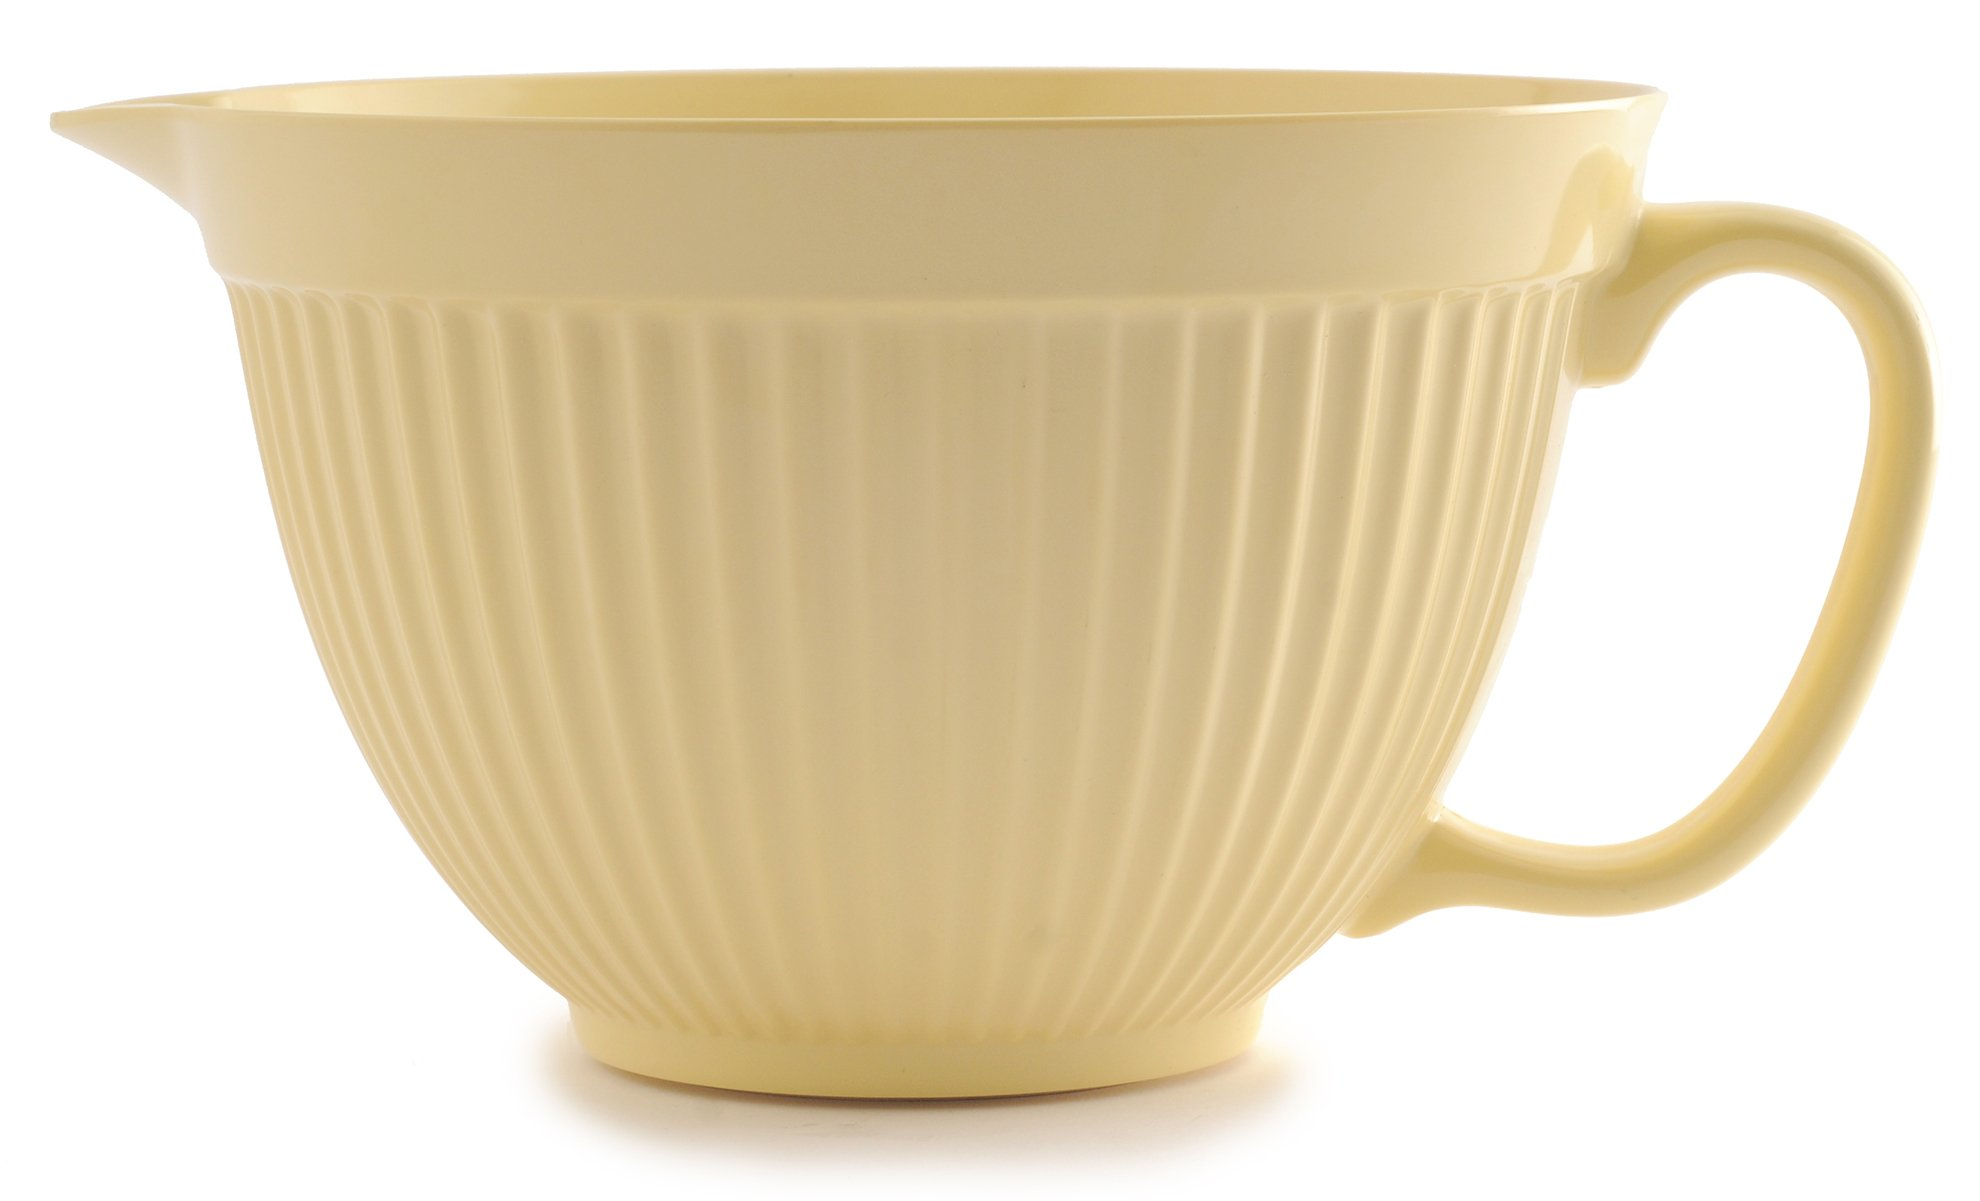 Norpro Grip-EZ 4 Quart Melamine Batter Bowl, Yellow